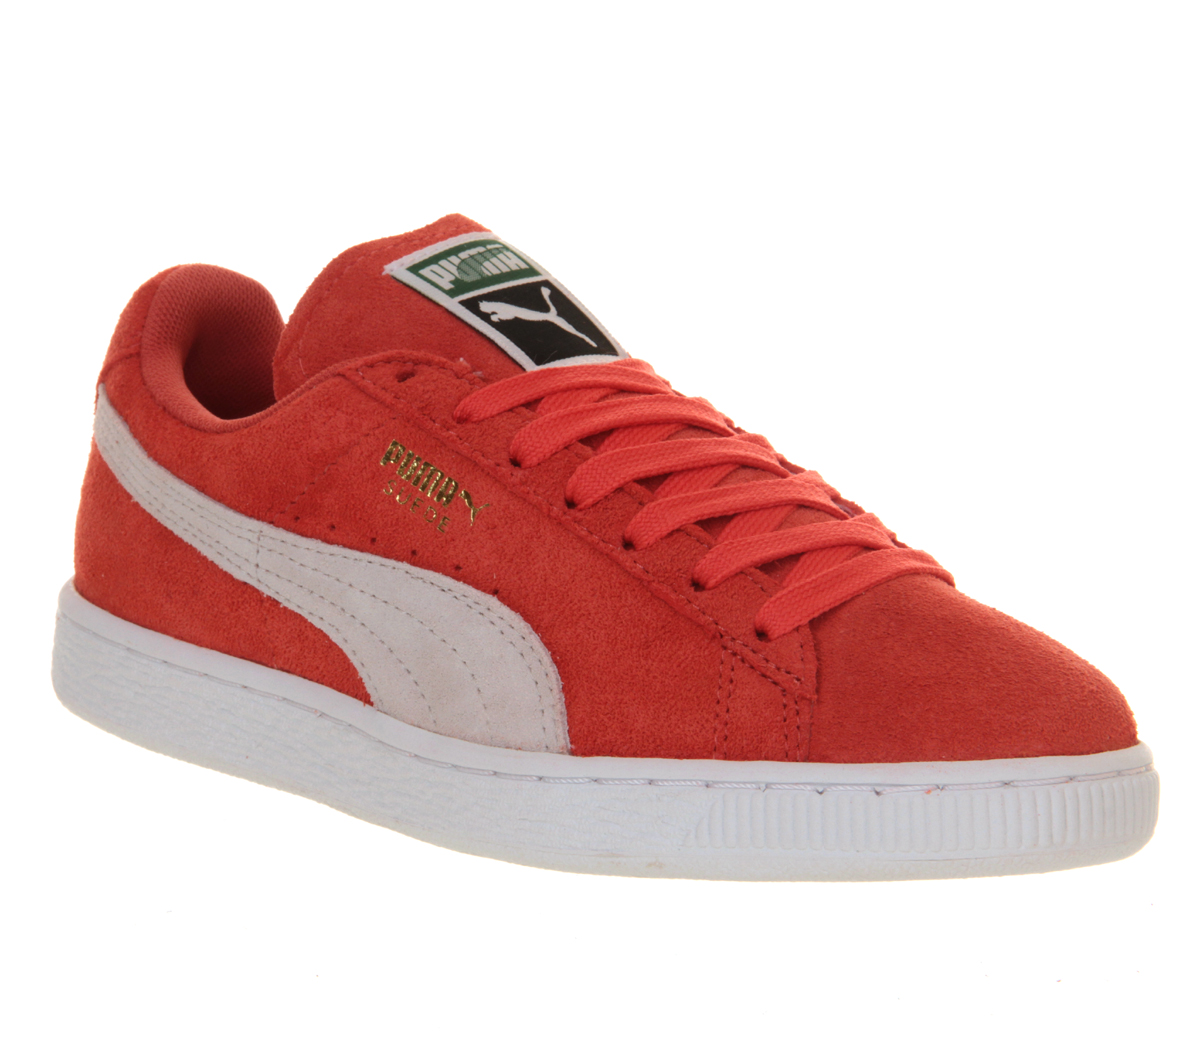 puma suede classic in red for men coral lyst. Black Bedroom Furniture Sets. Home Design Ideas